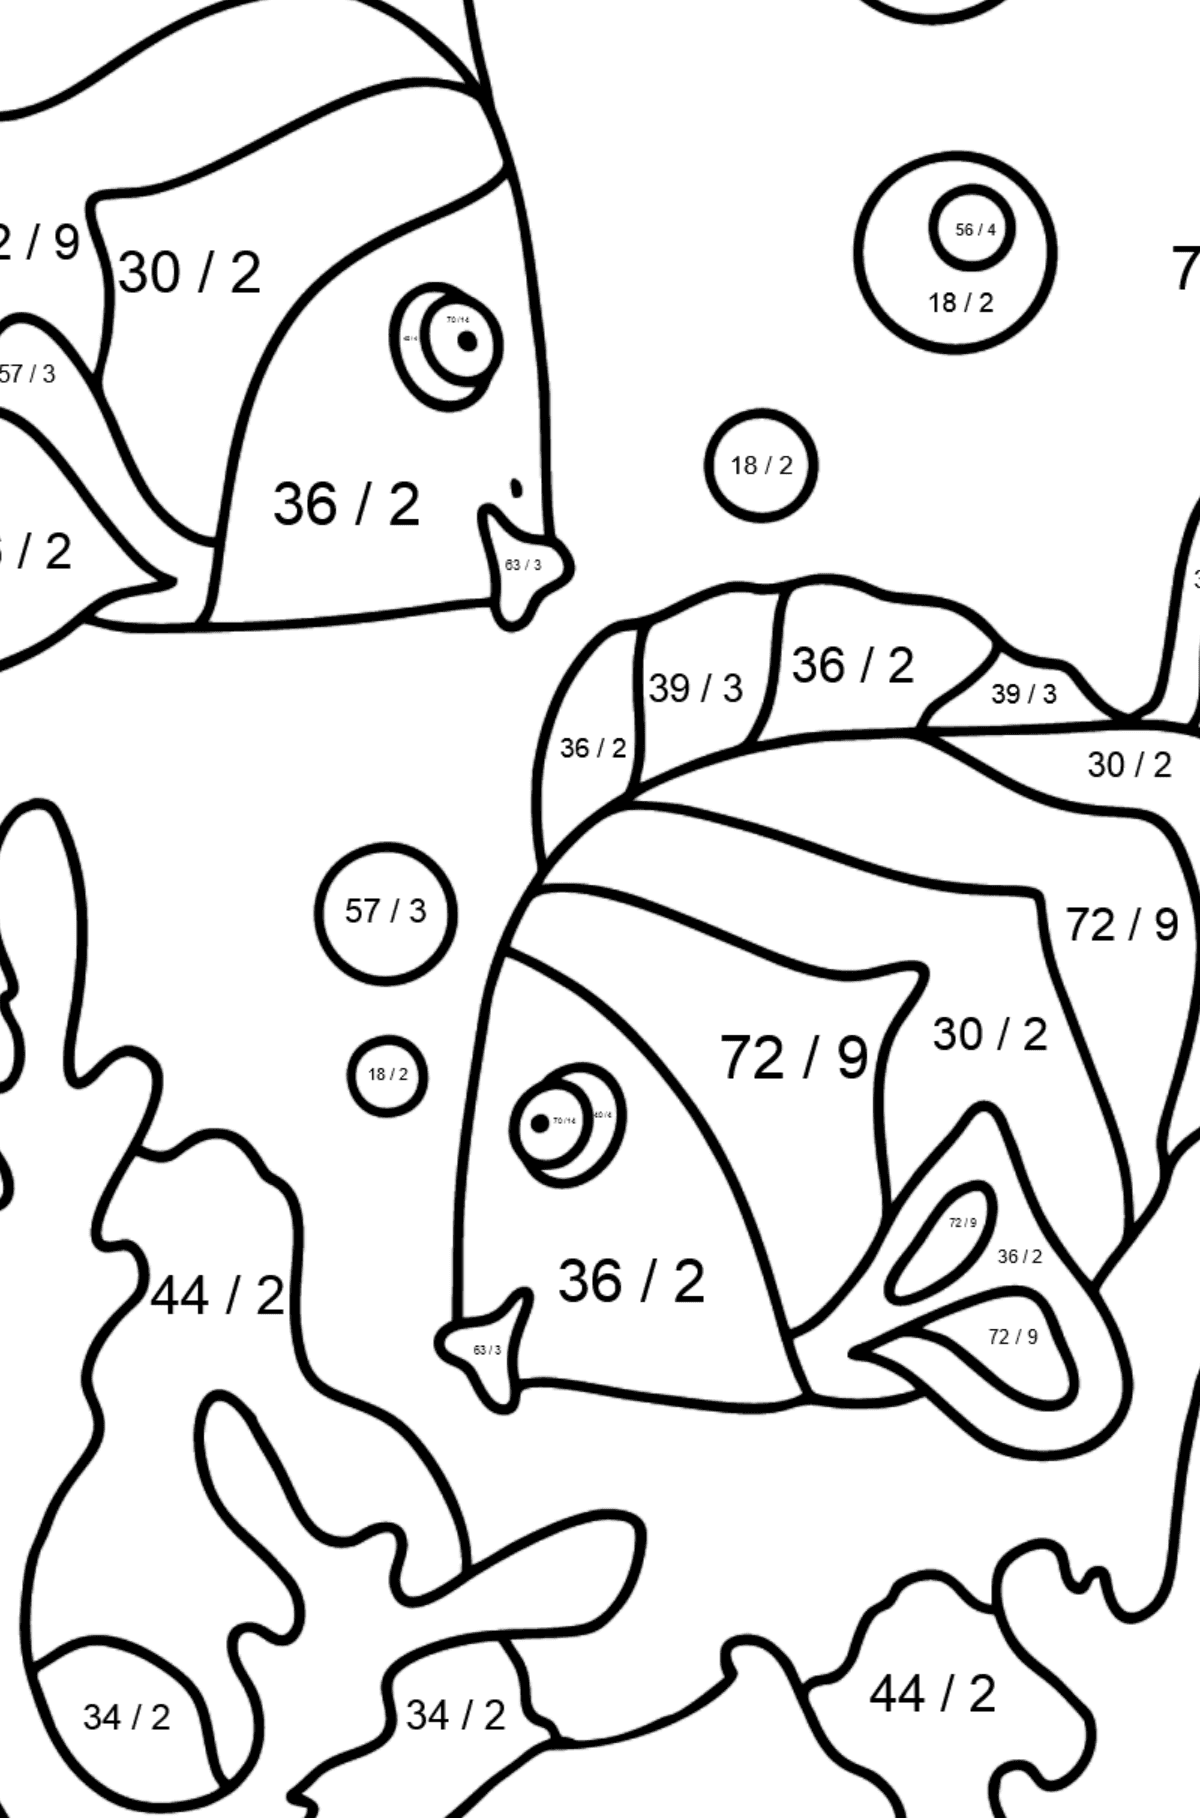 Coloring Page - Fish are Swimming Very Energetically - Math Coloring - Division for Kids